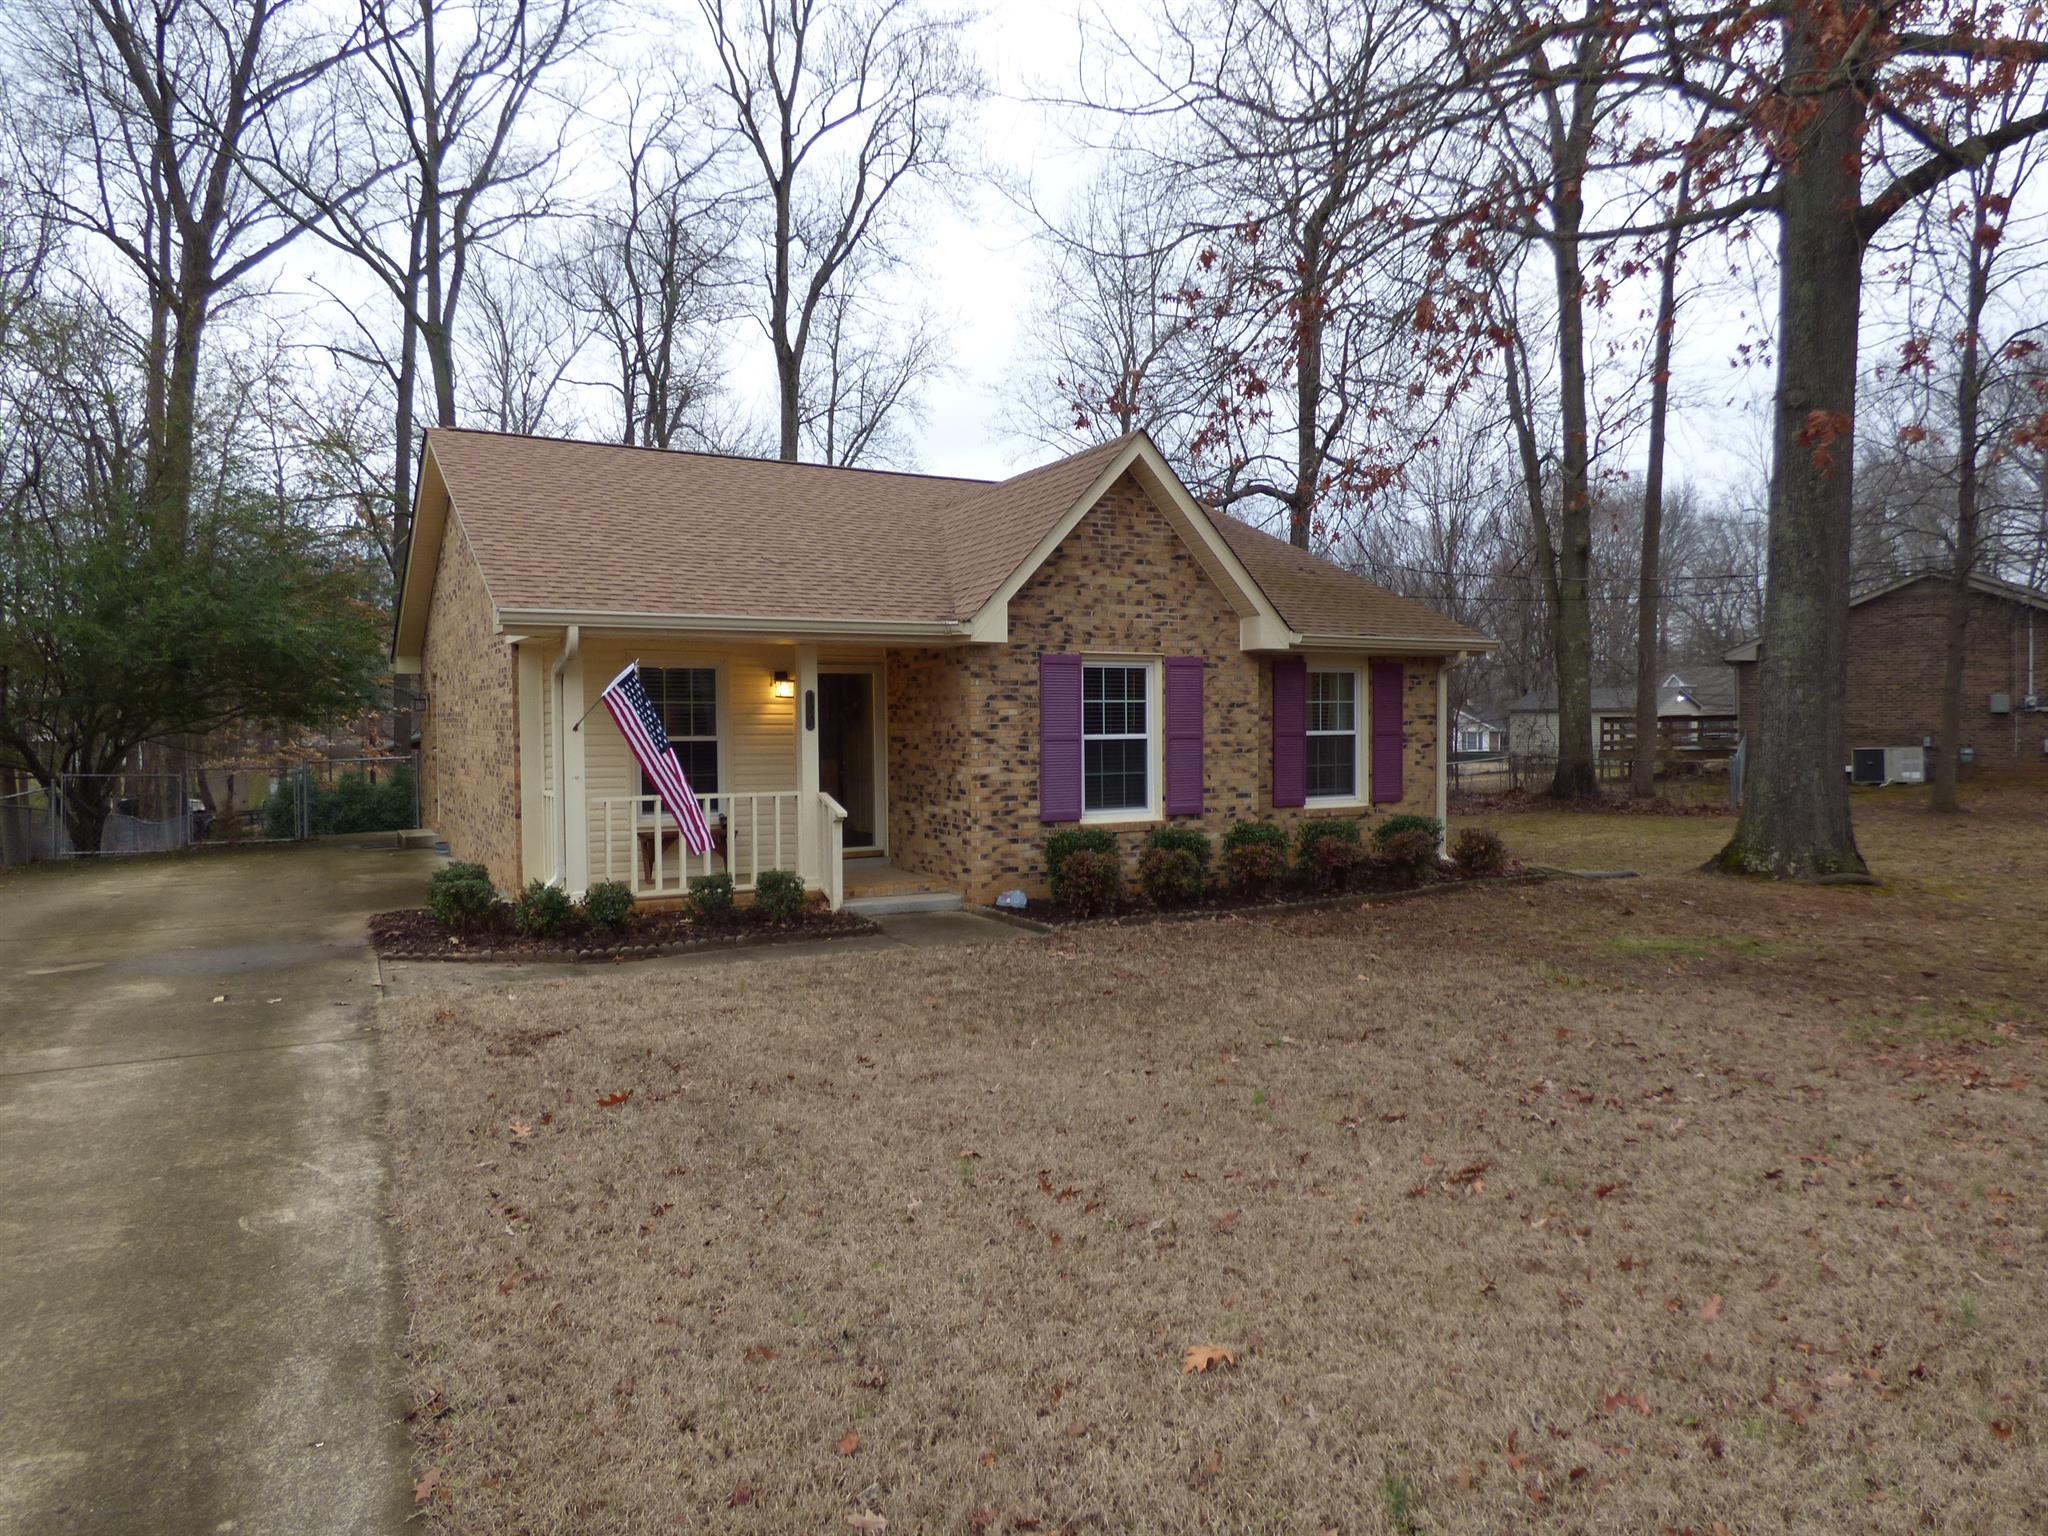 172 W Regent Dr, Clarksville in Montgomery County County, TN 37043 Home for Sale